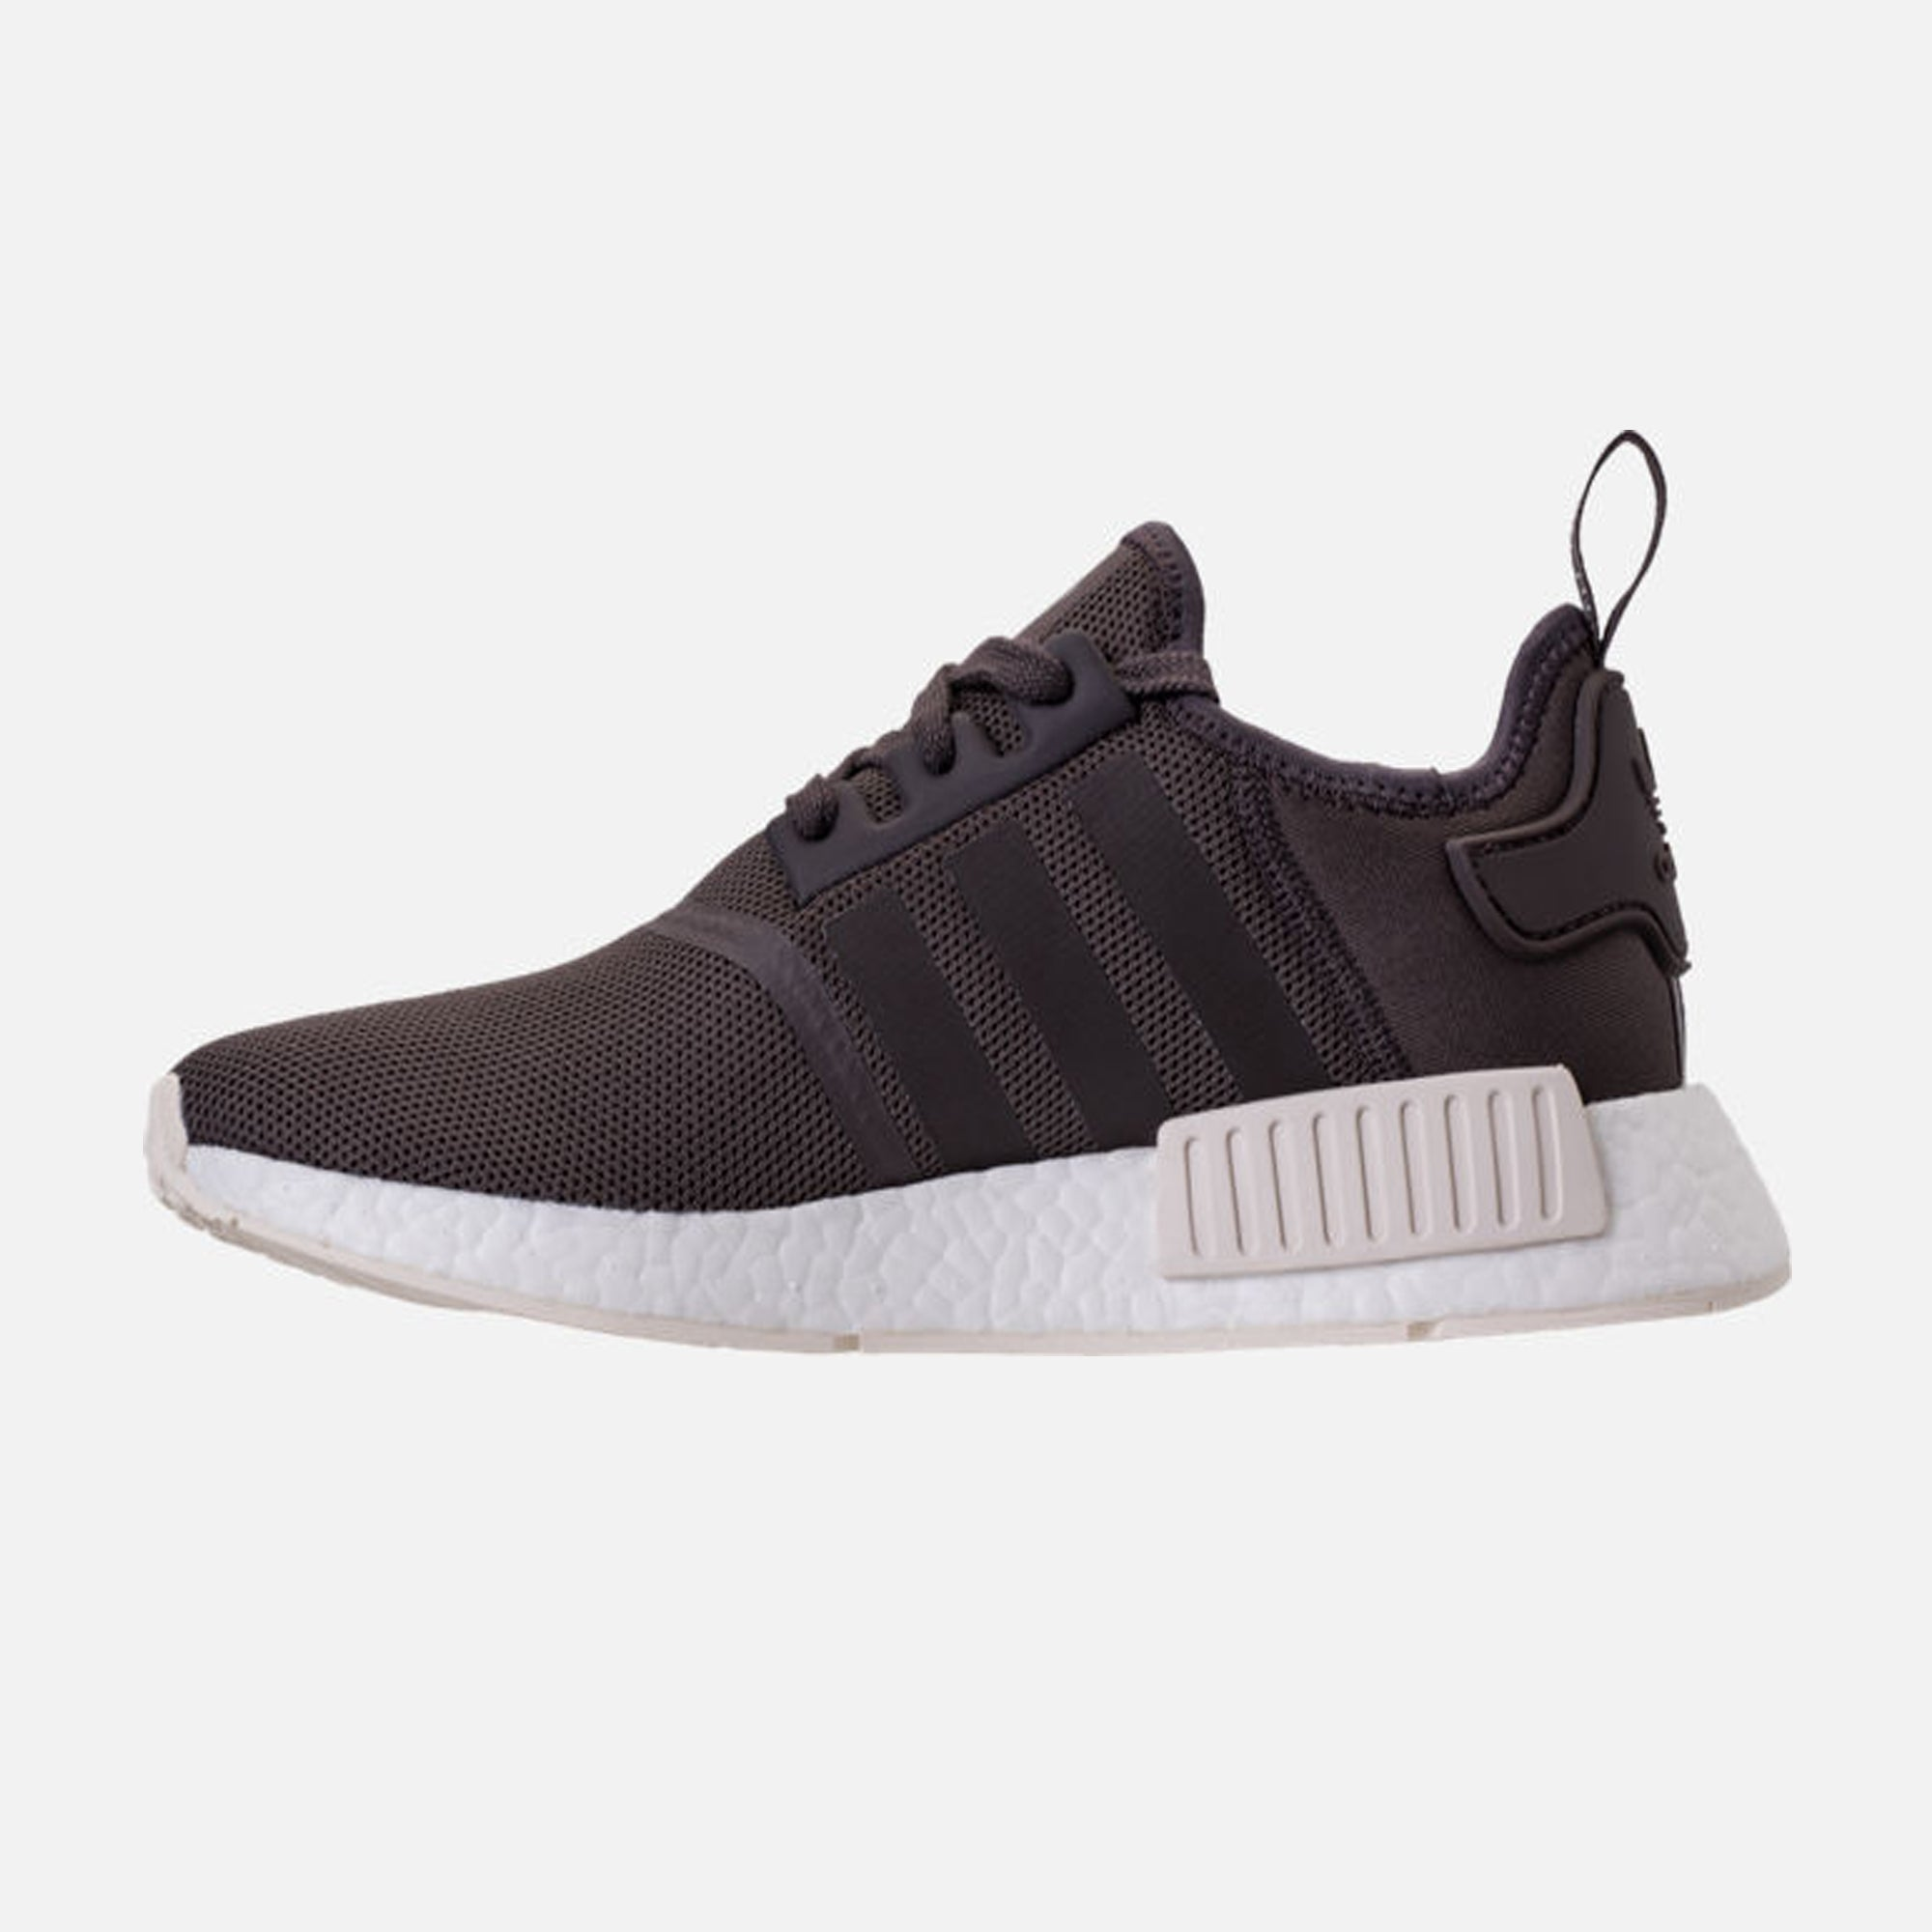 af16604a3f142 ... uk mens adidas nmd runner casual shoes urban trail chalk white 89cdc  e5600